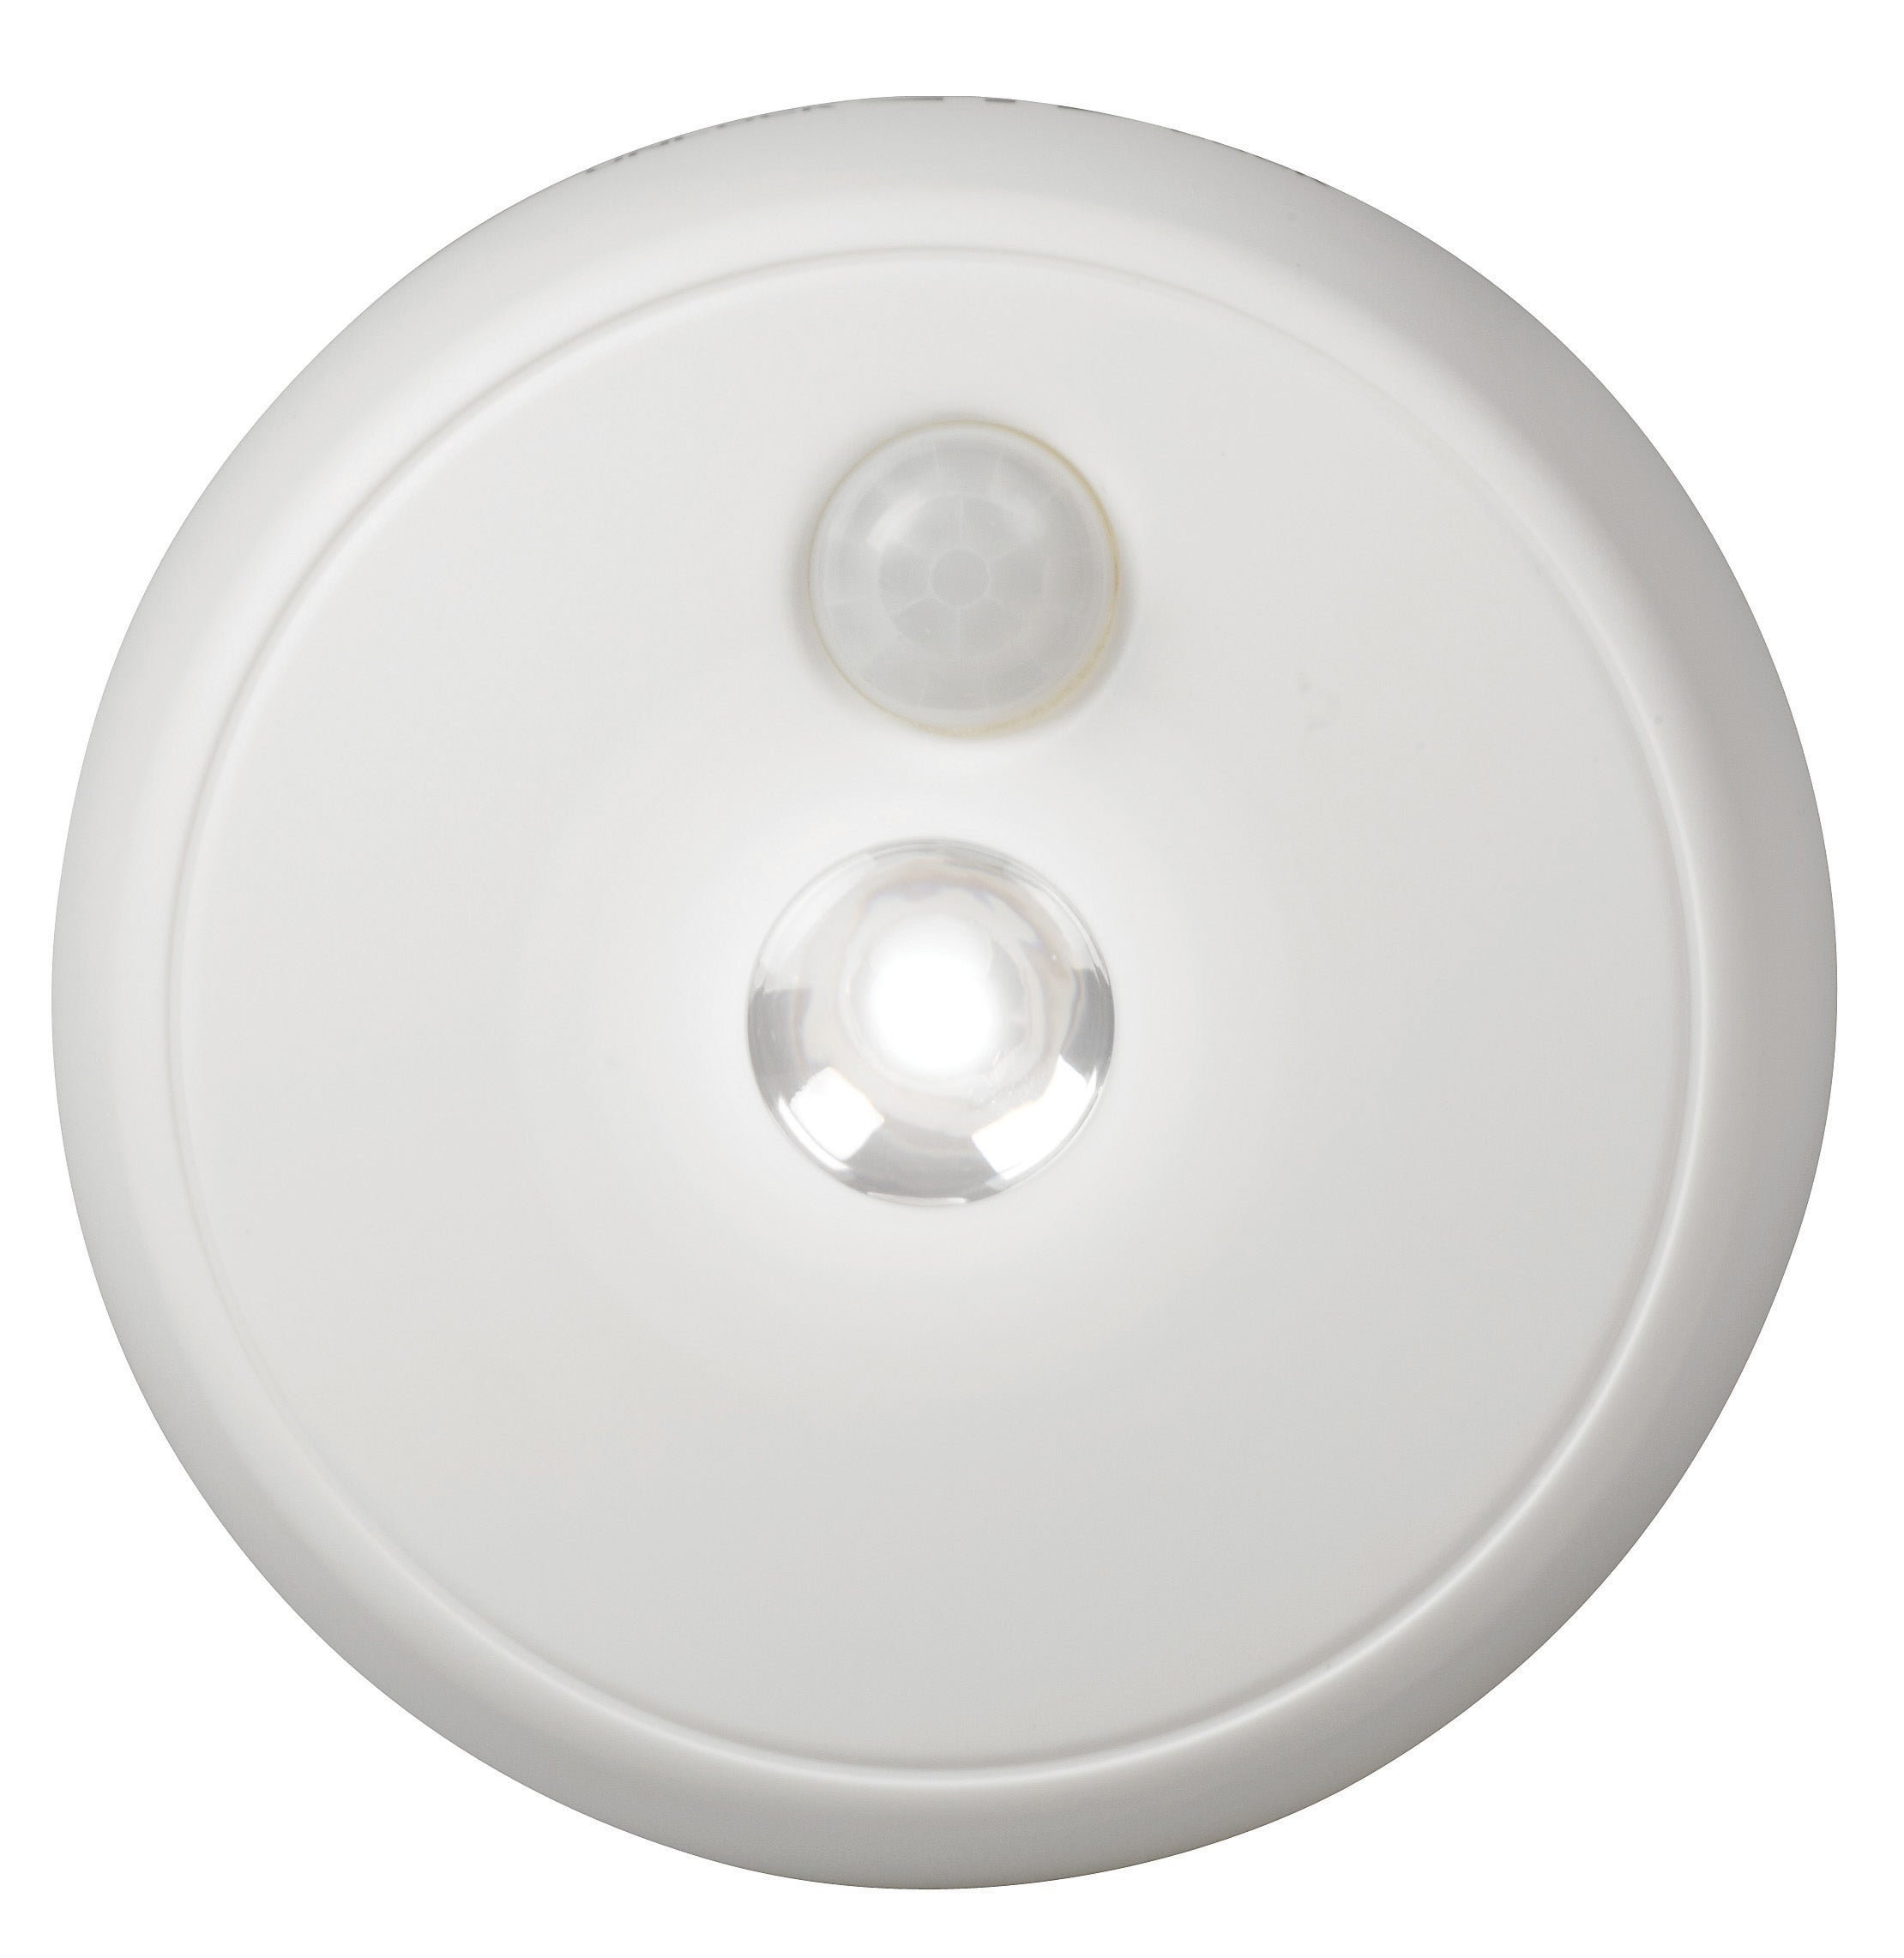 Buy ceiling aids products - HealthSmart SafeStep Motion LED Ceiling Light (SafeStep Ceiling Light)